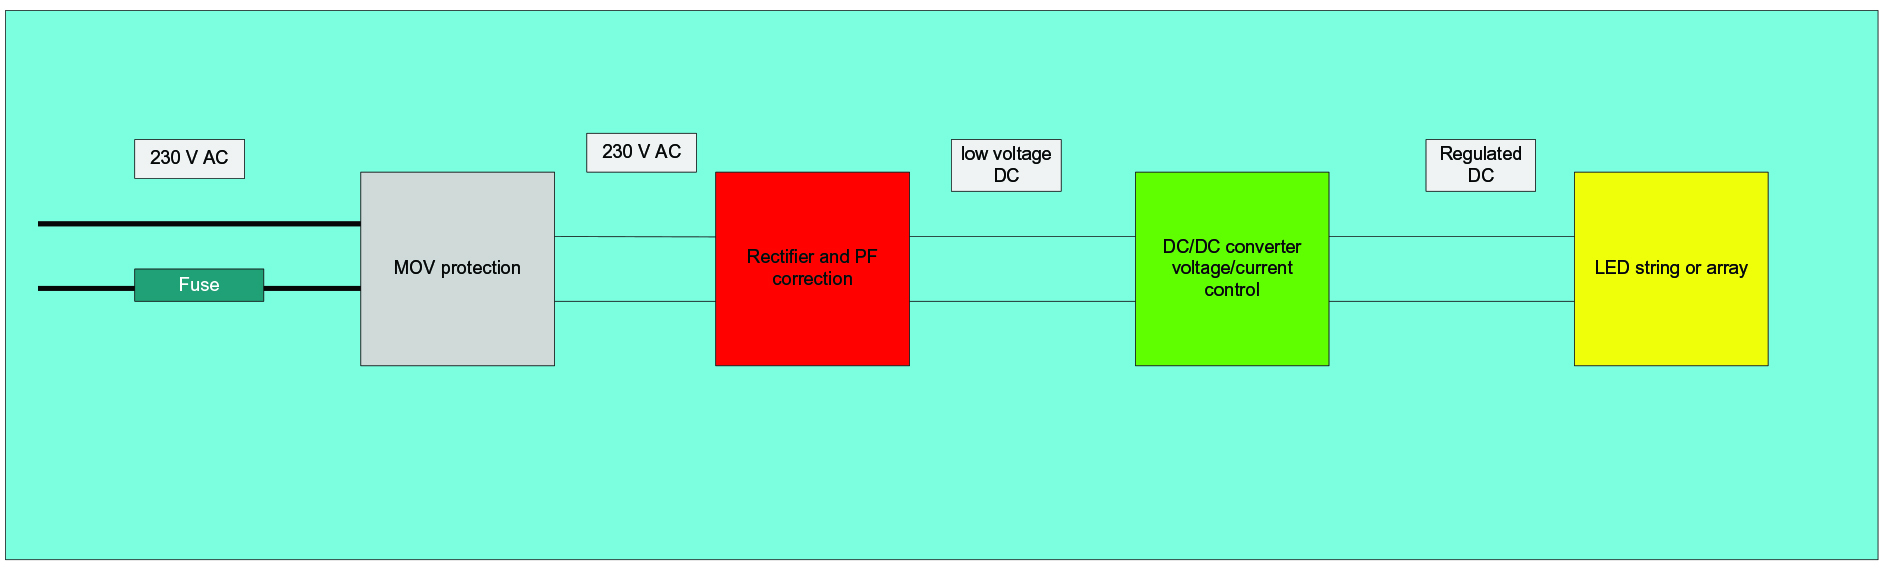 hight resolution of dc wiring for led lighting systems ee publishers boat light wiring diagram fig 1 arrangement of